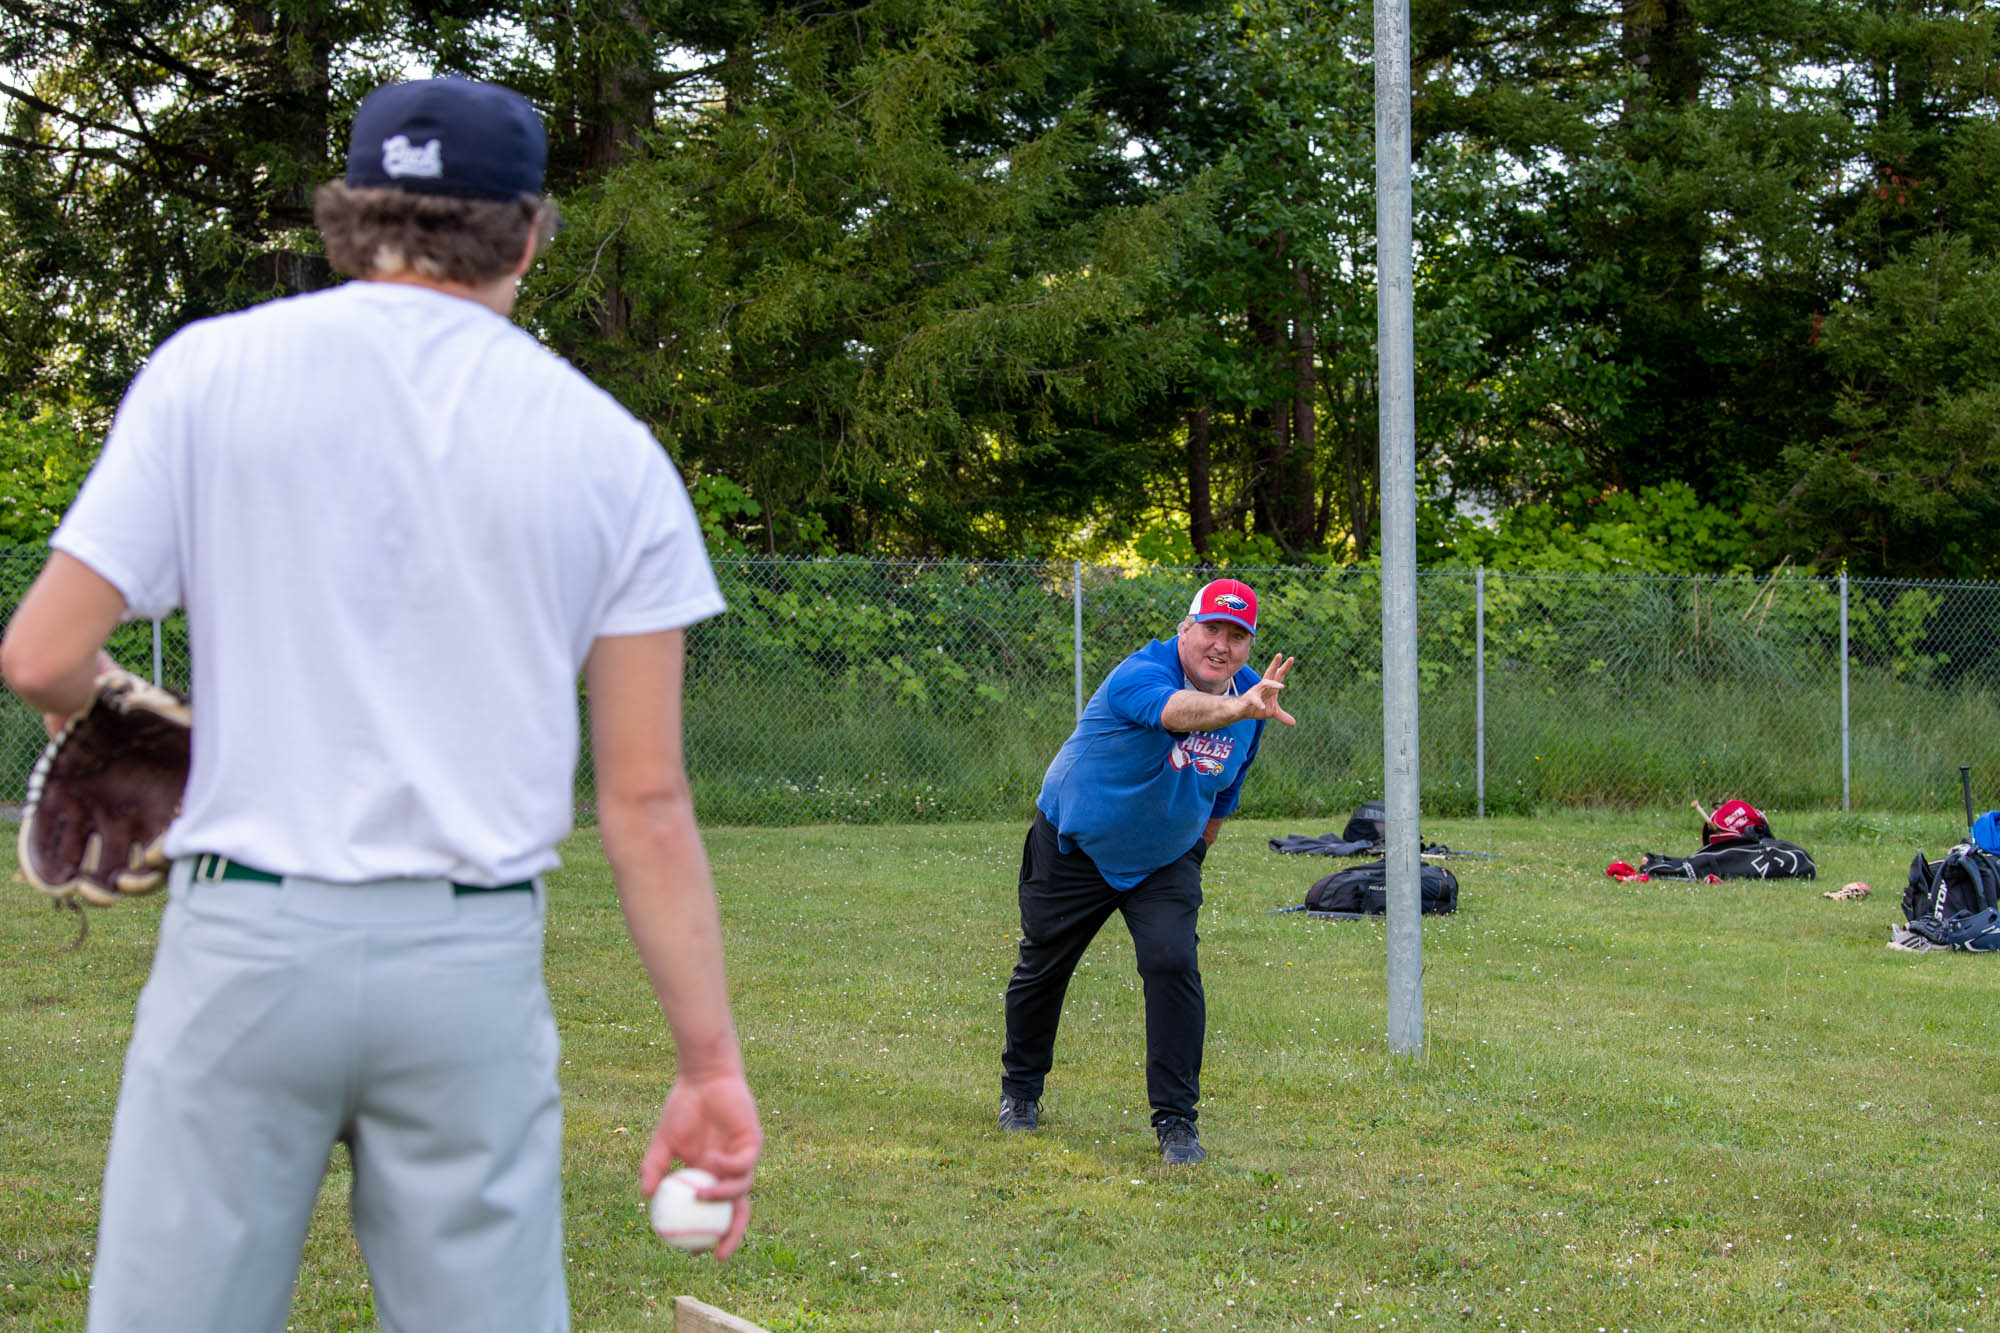 Humboldt Eagles board member Jim Pastori instructs pitcher Hayden Bode to release the ball lower.